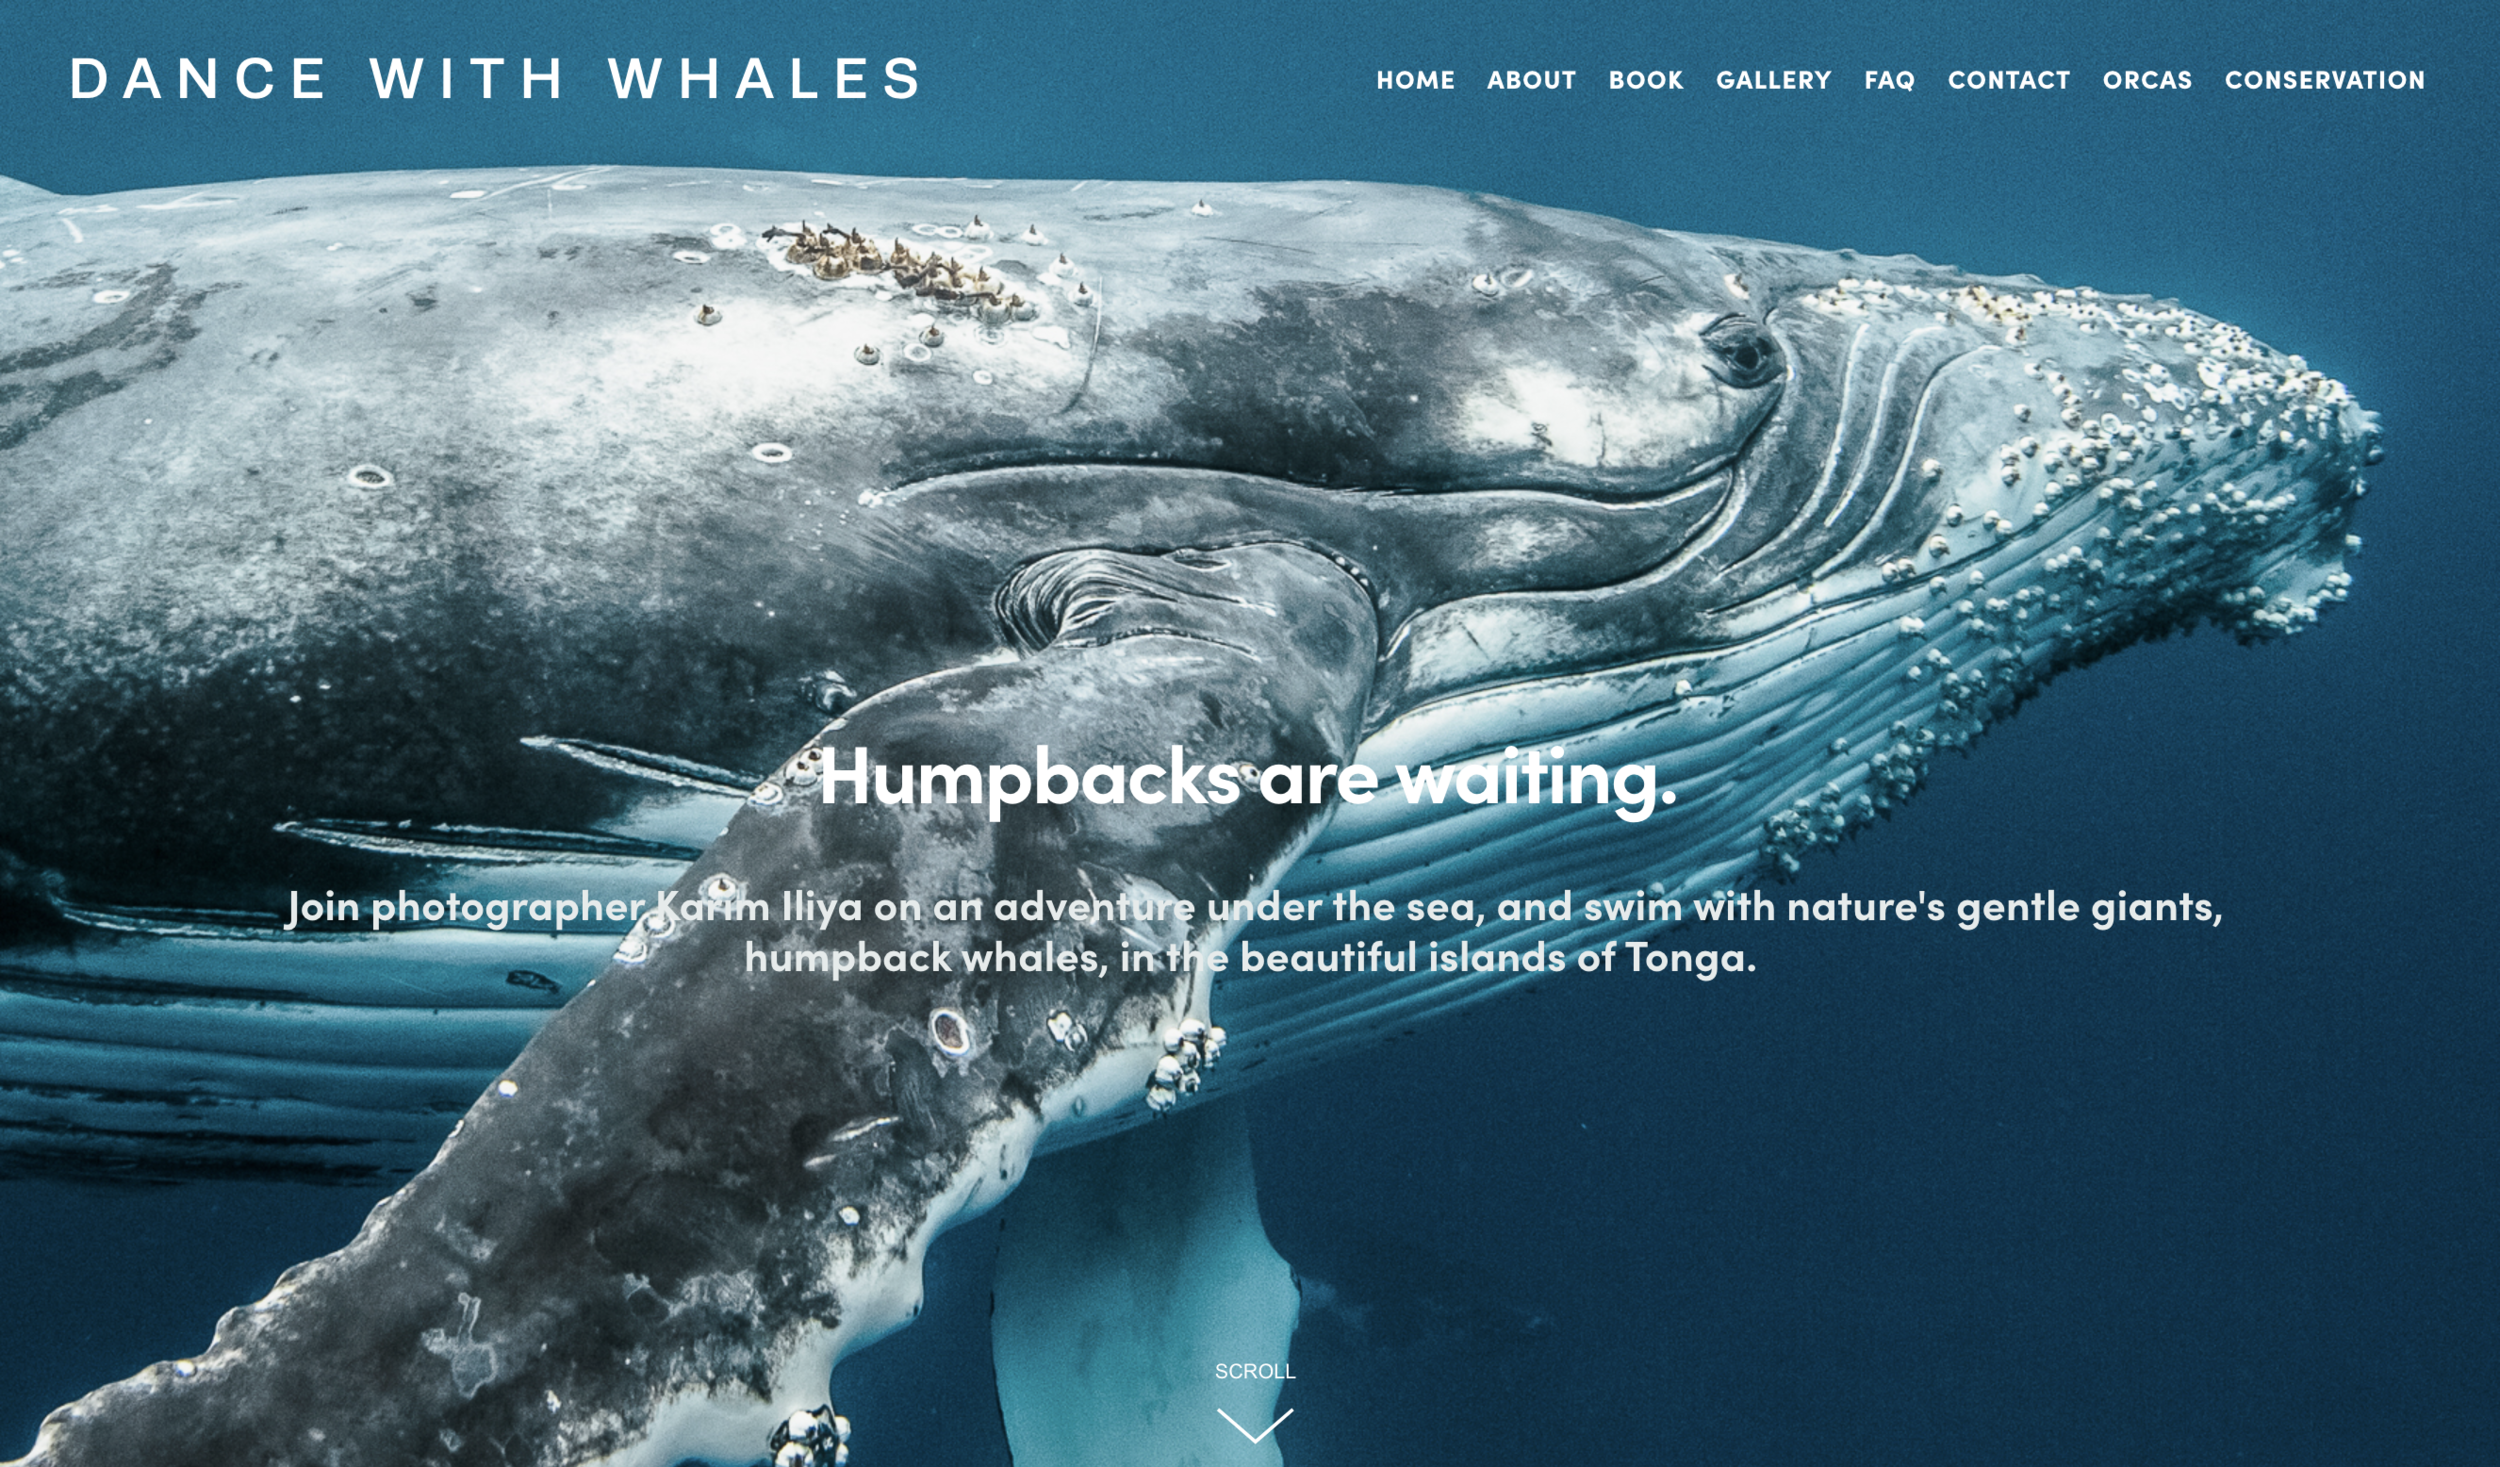 homepage_dancewithwhales.png